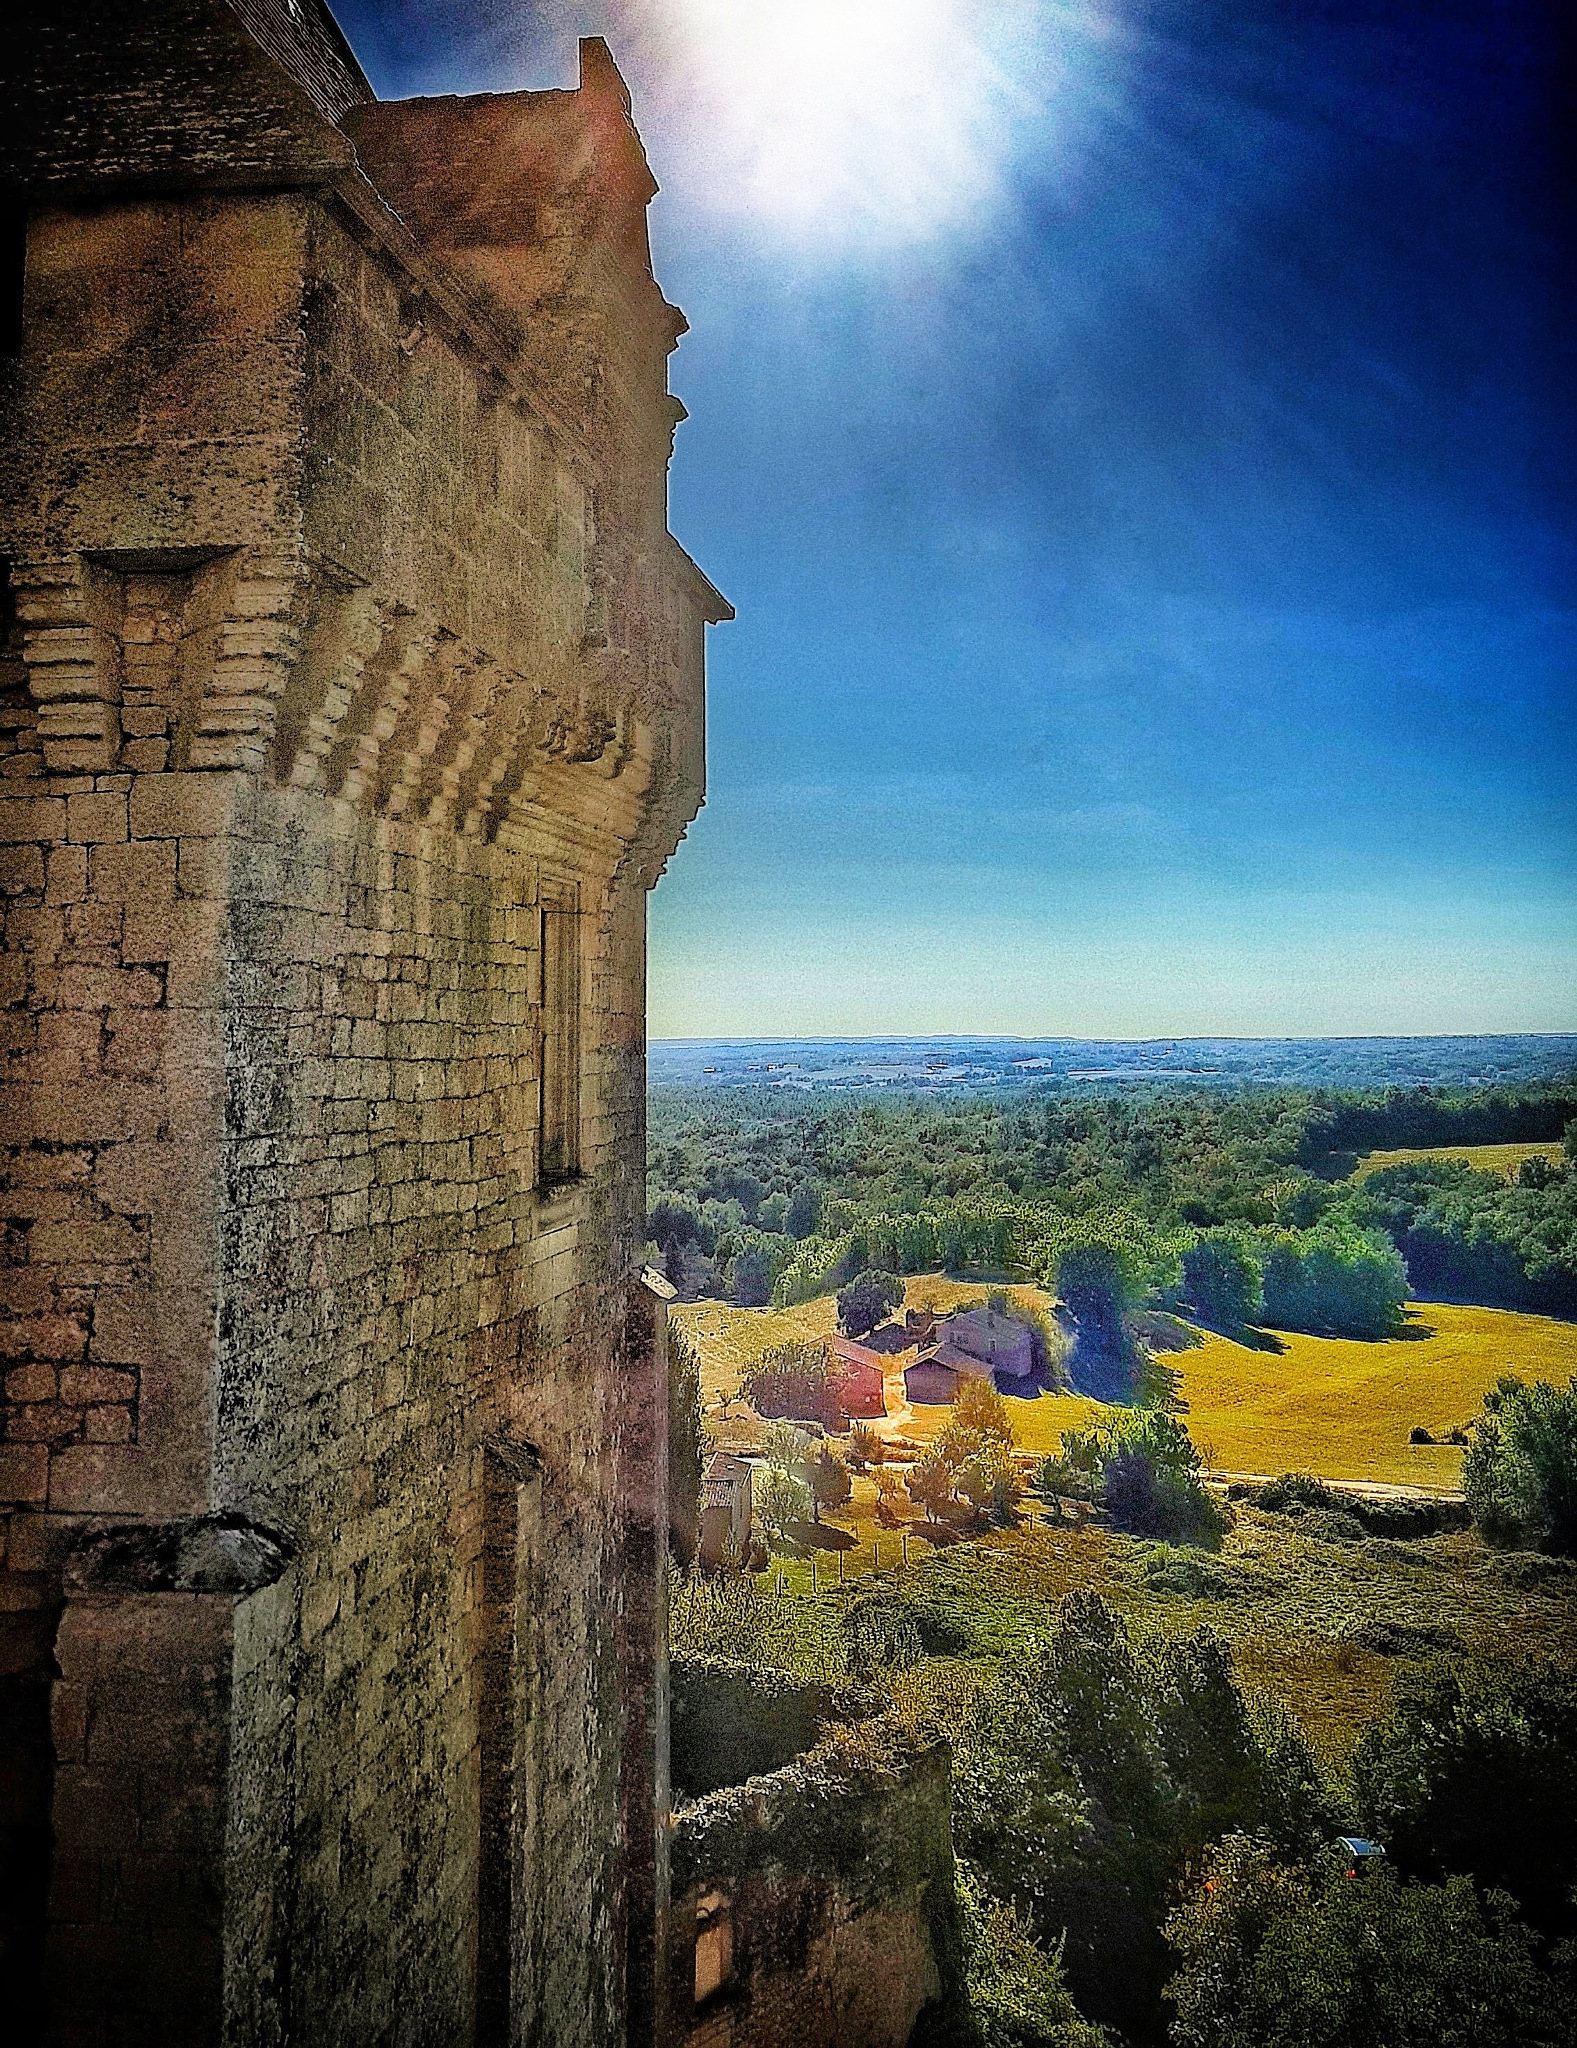 Landscape from the Castle of Biron by Claudia Farolfi